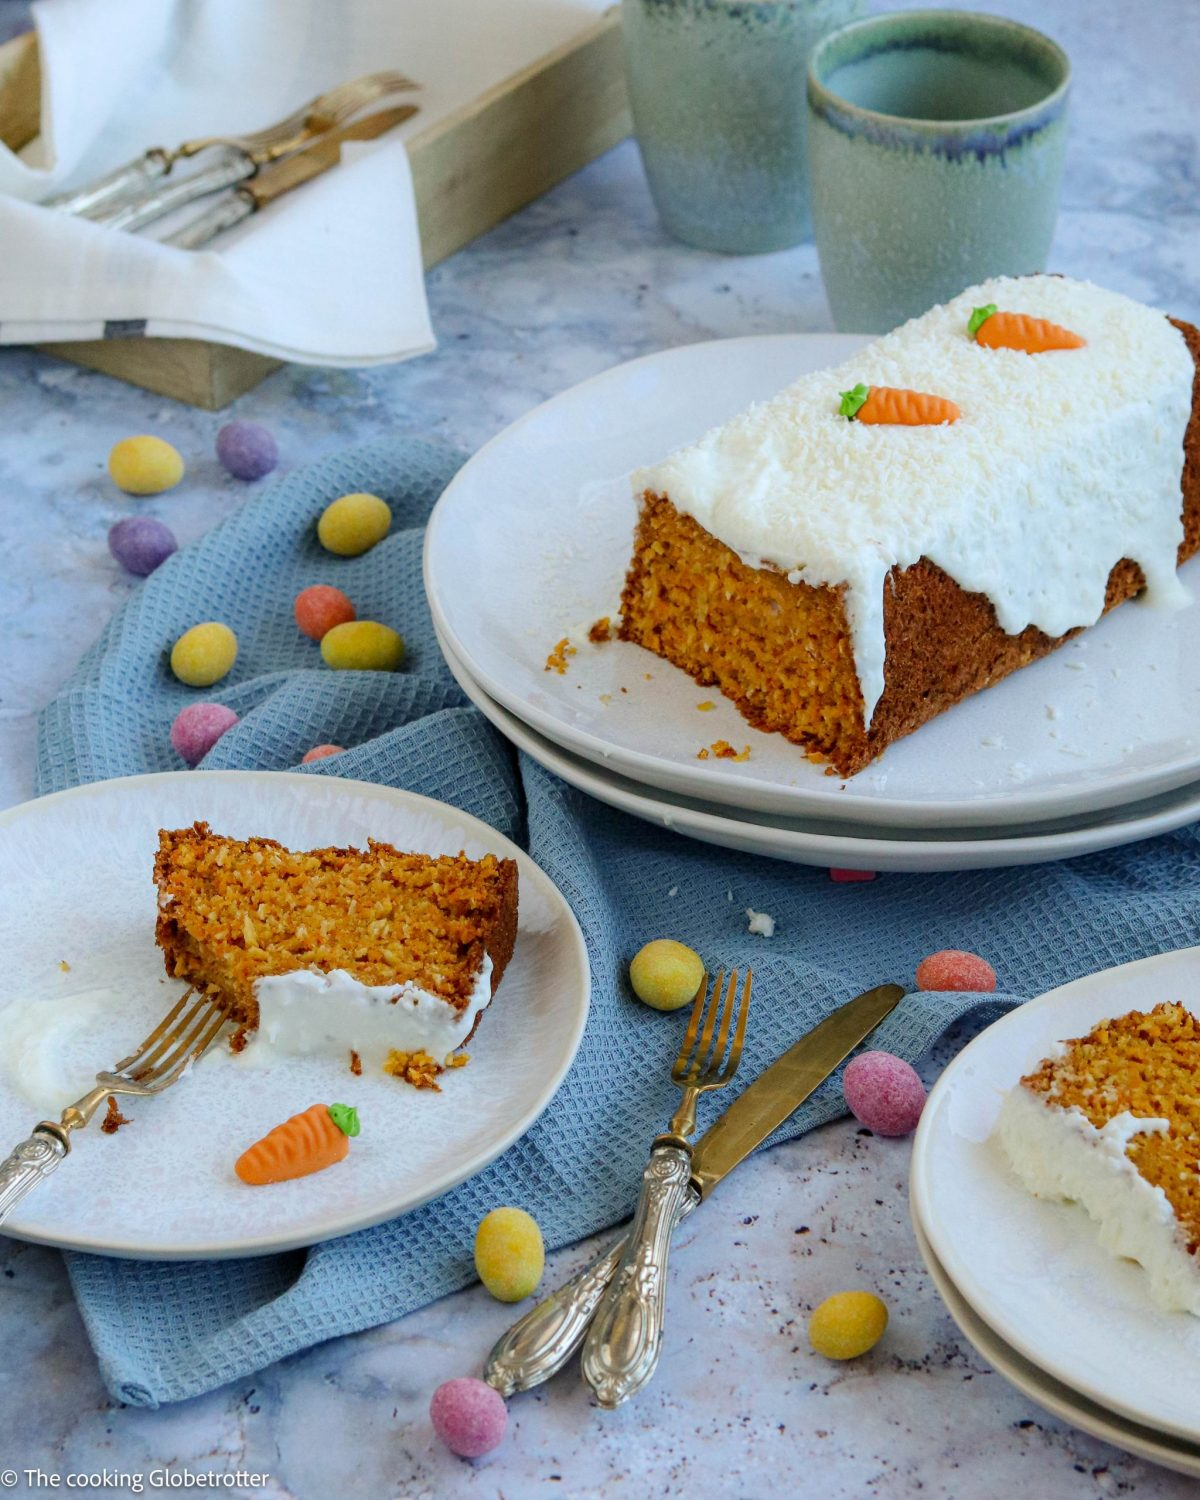 Recipe for coconut and carrots cake for your easter brunch with family healthy snack for children low sugar bake